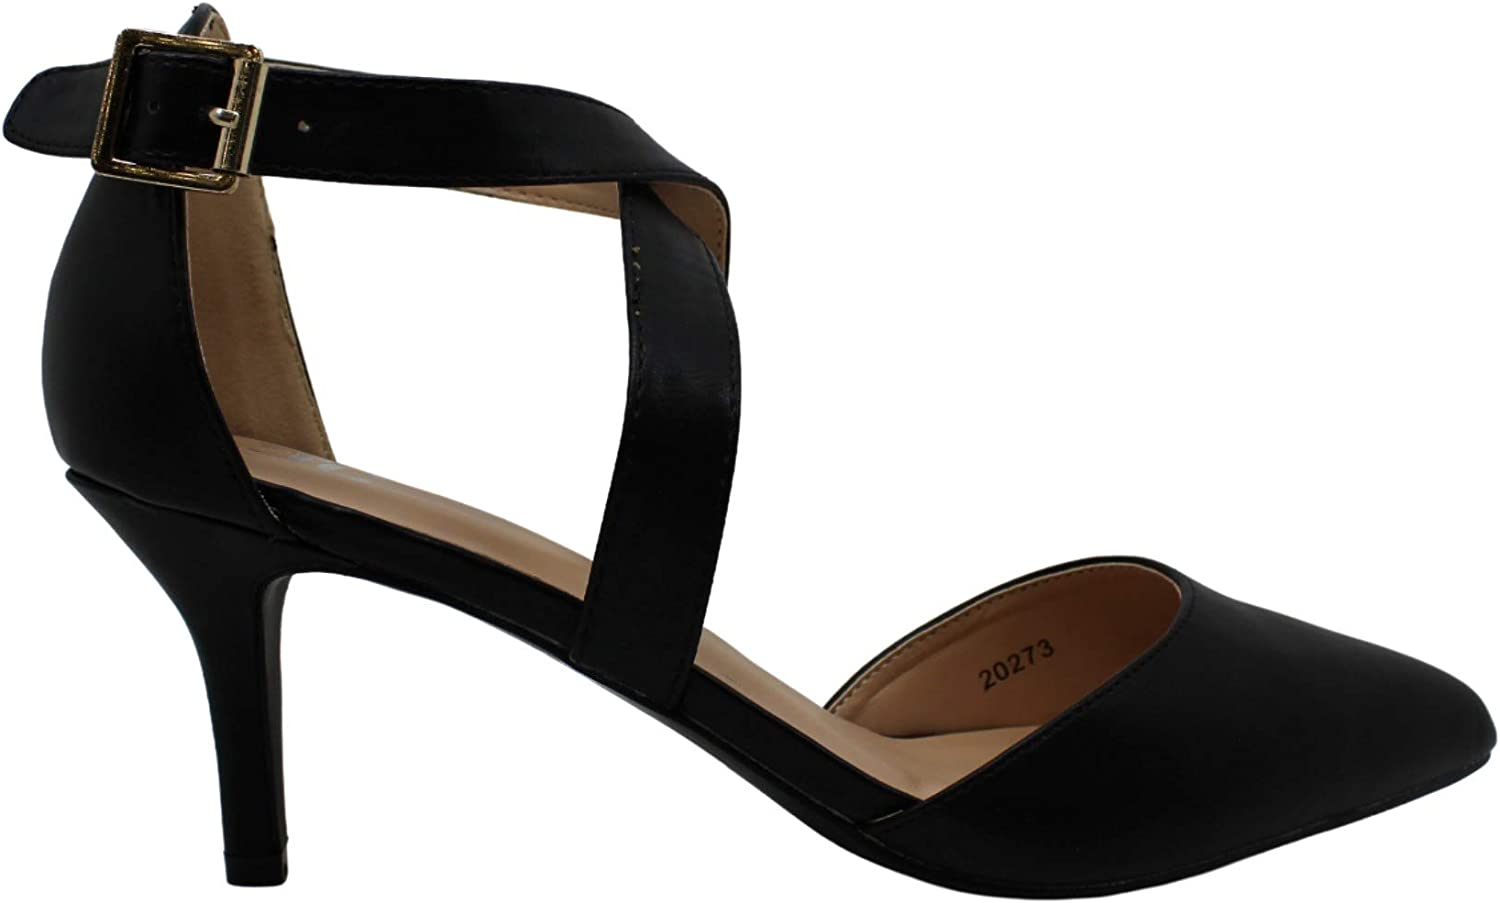 Journee San Francisco Mall Collection Women's Pumps lowest price